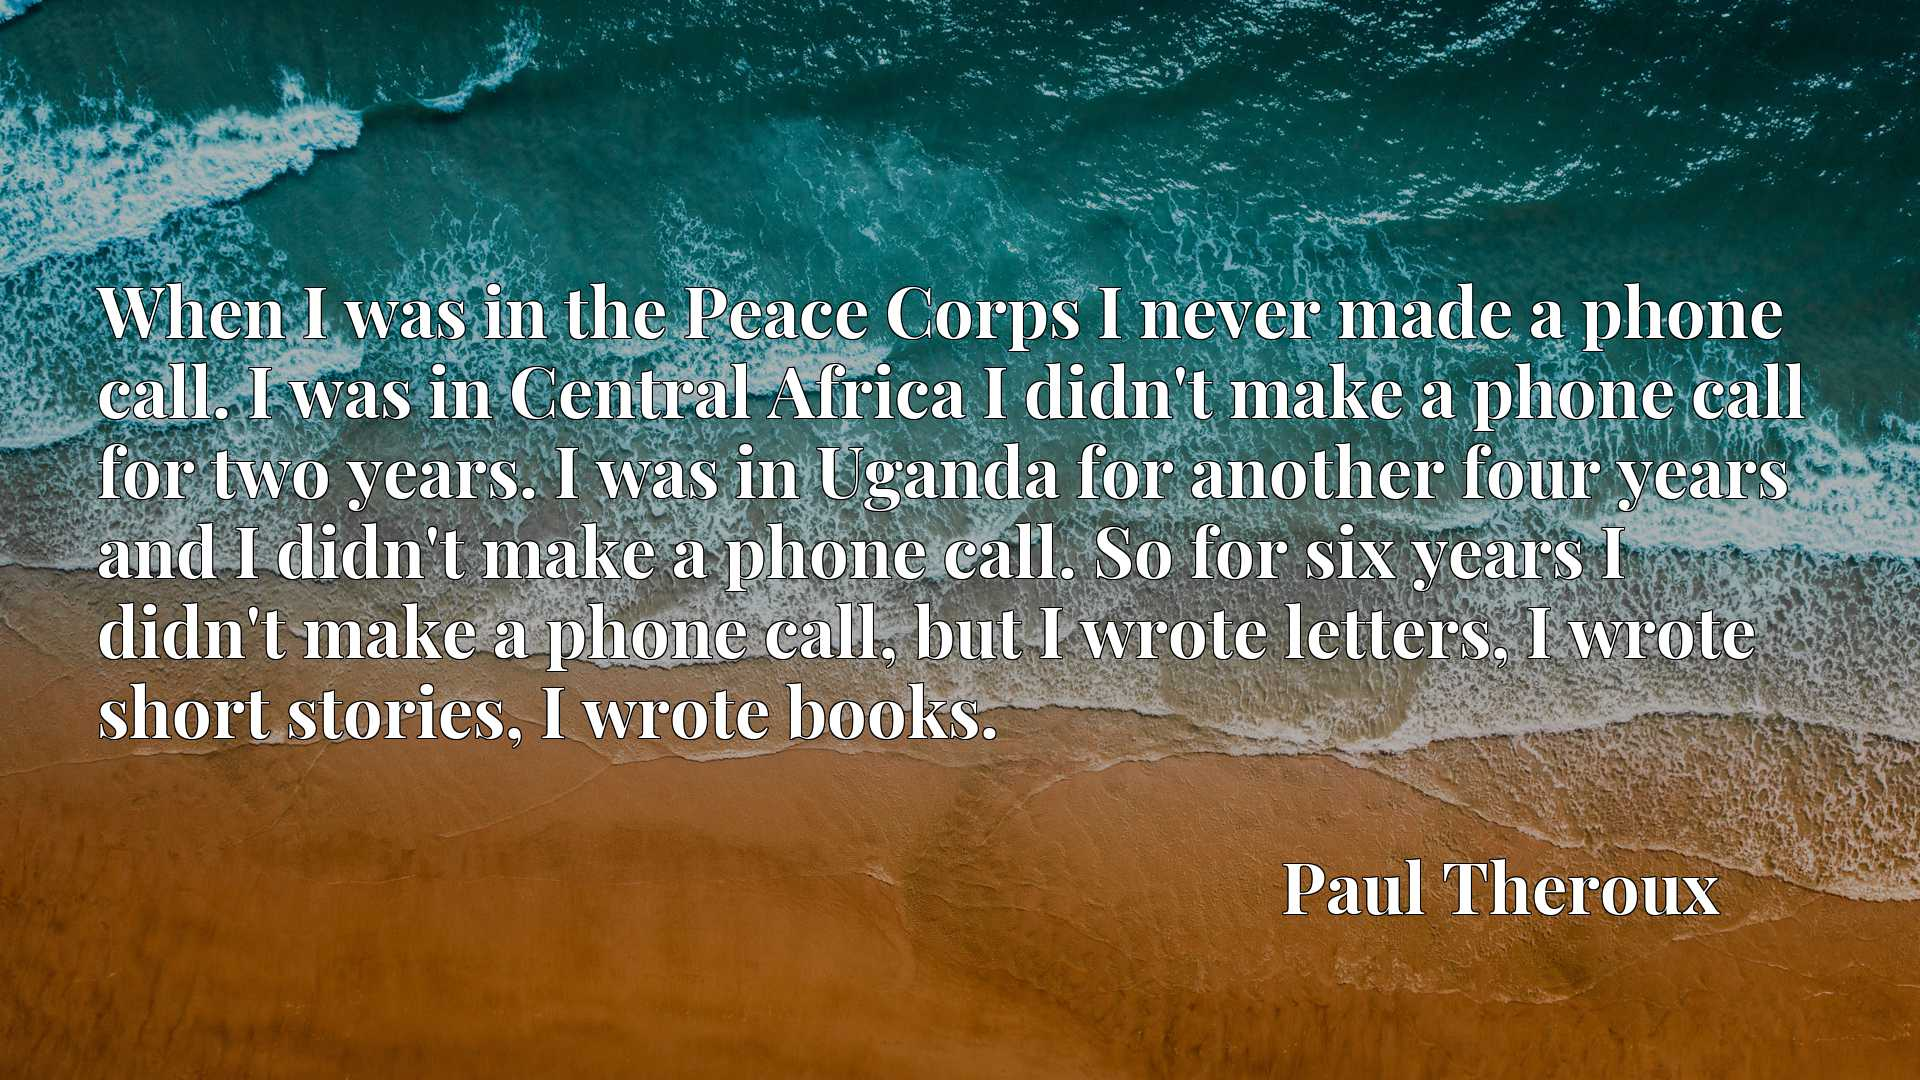 When I was in the Peace Corps I never made a phone call. I was in Central Africa I didn't make a phone call for two years. I was in Uganda for another four years and I didn't make a phone call. So for six years I didn't make a phone call, but I wrote letters, I wrote short stories, I wrote books.